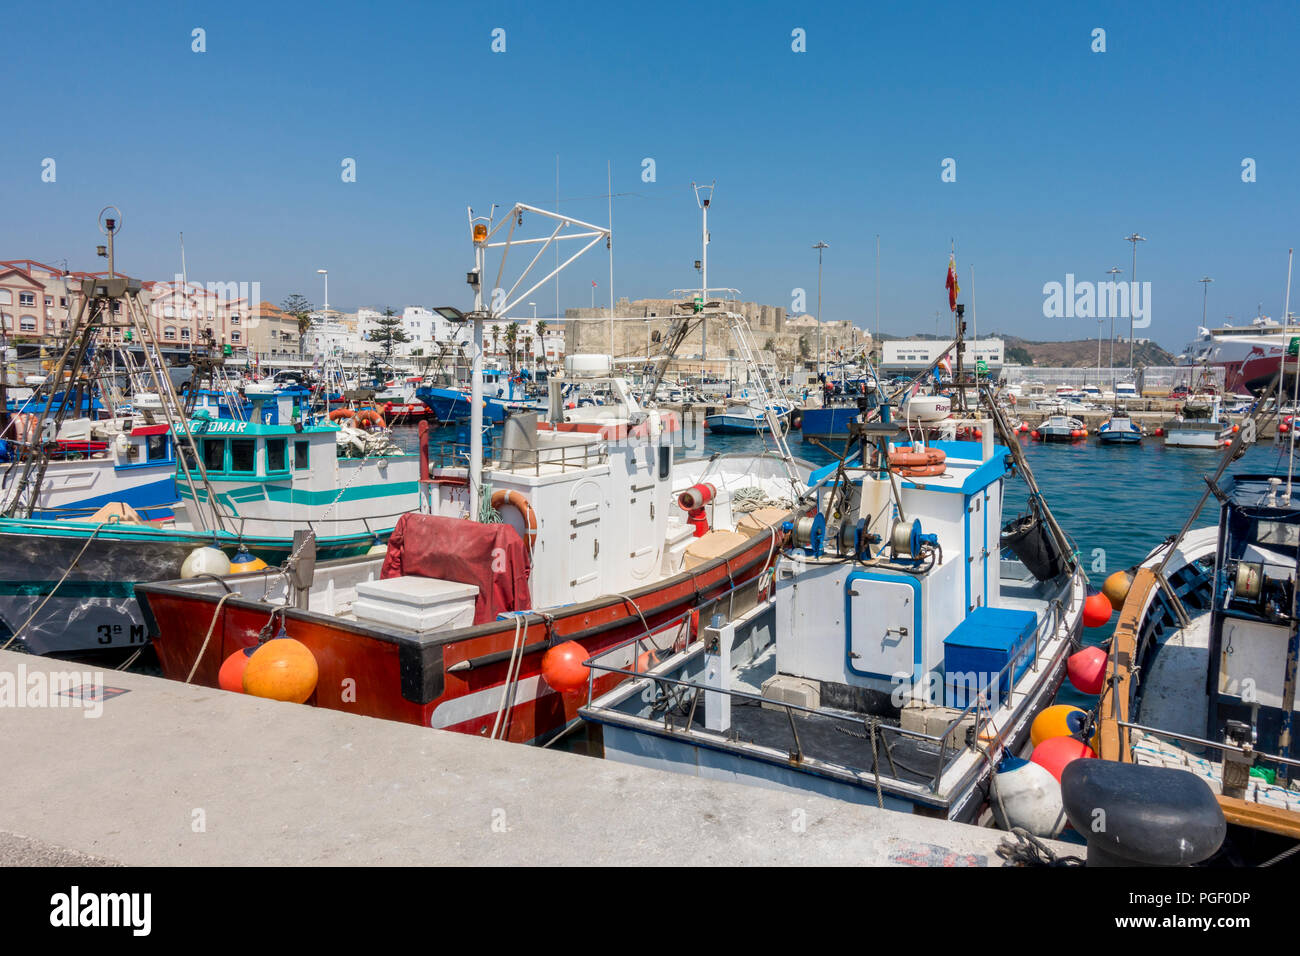 Small fishing boats at the fishing port of Tarifa, Costa de la Luz, Andalusia, Spain. Stock Photo